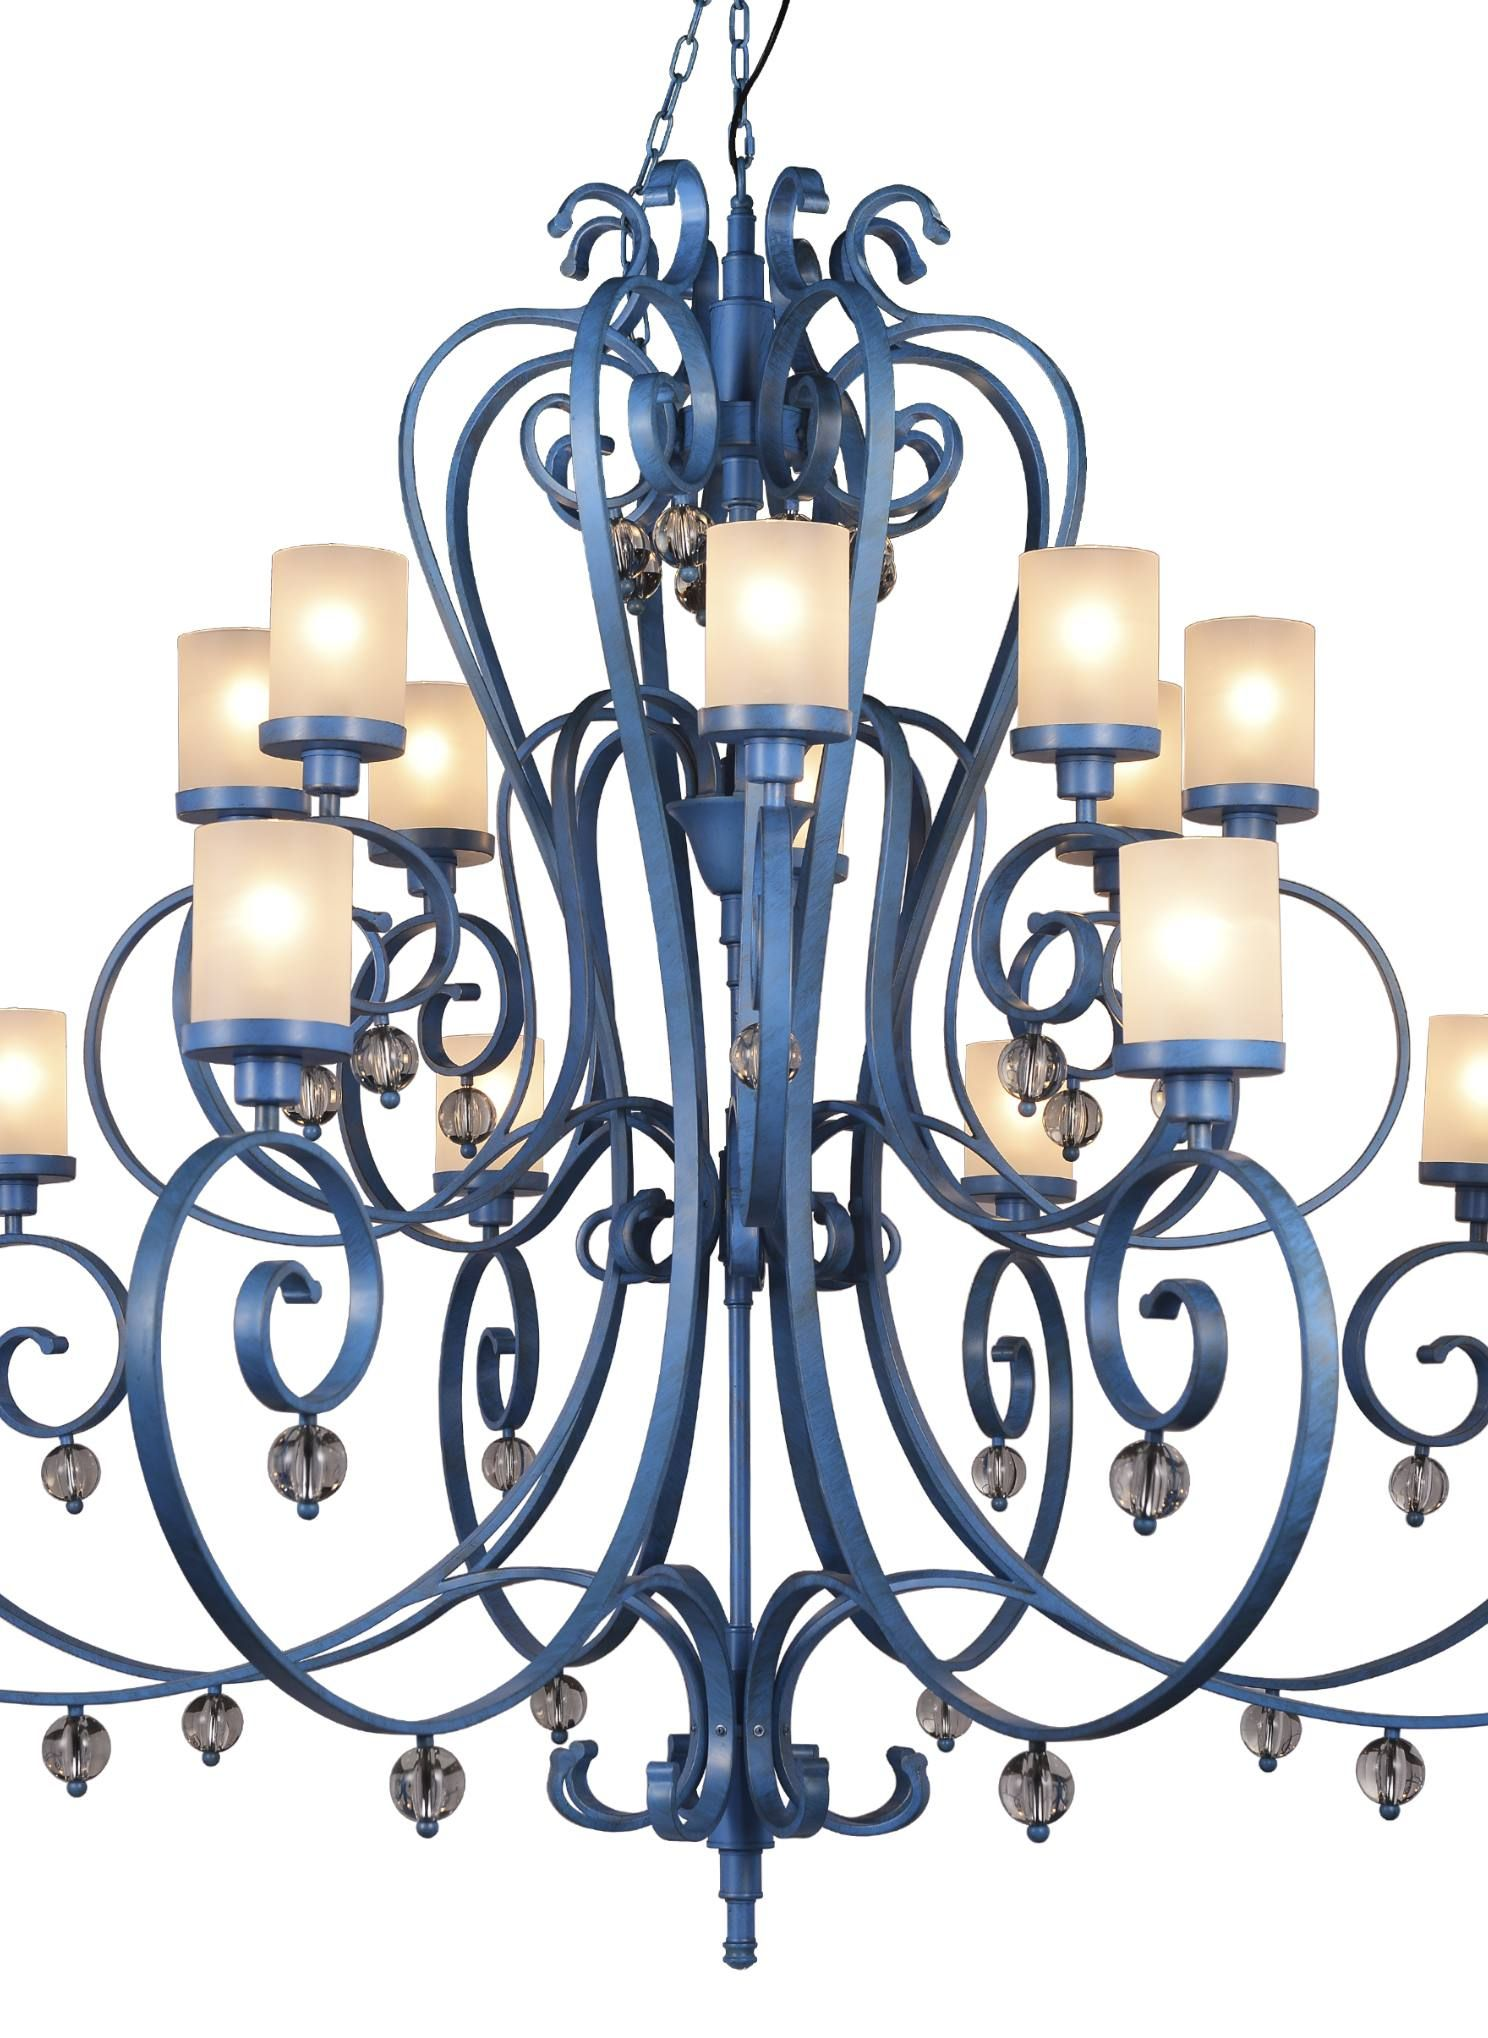 Lamparas Garcia Requejo Spectacular Chandelier Ceiling Lamp More Than 2 Meters In Diameter